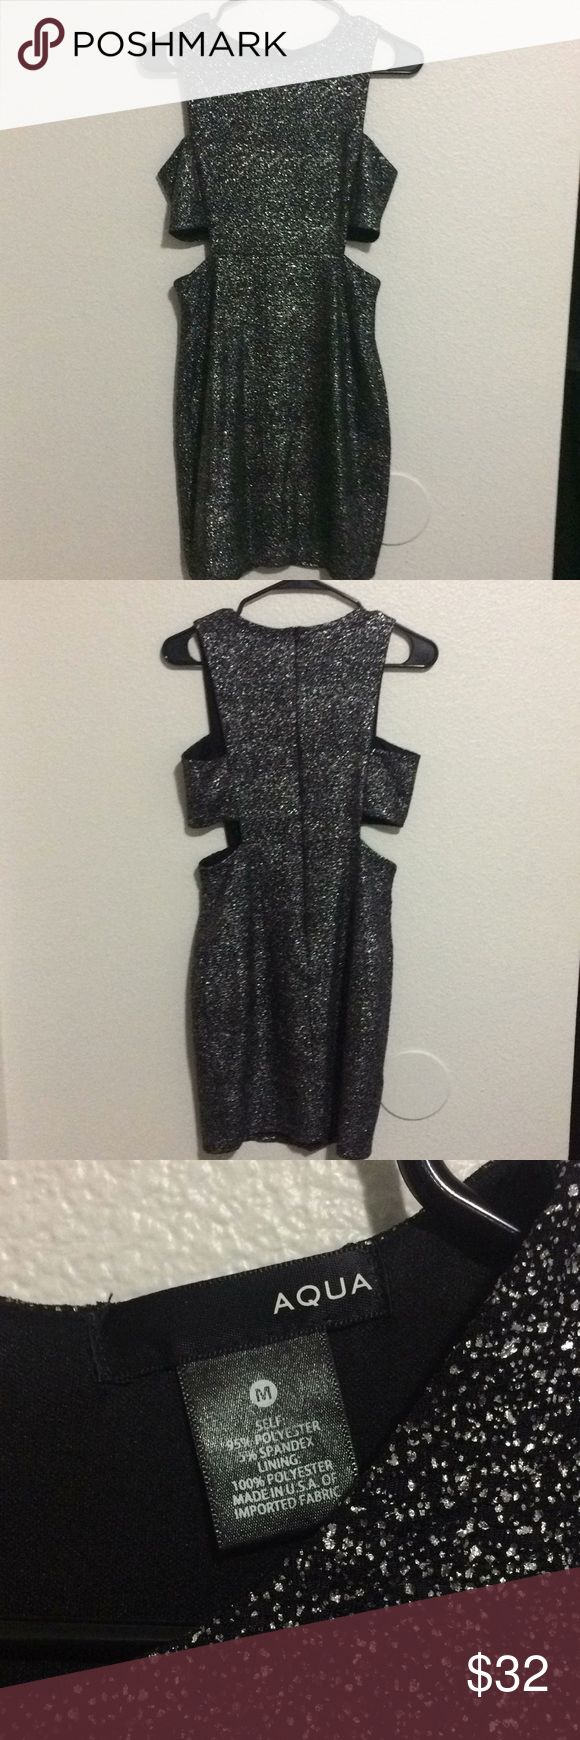 AQUA from Bloomingdales black bodycon dress AQUA from Bloomingdales black silver metallic bodycon dress with side cut outs.   Size Medium. Has stretch.   Worn one time. Aqua Dresses Midi